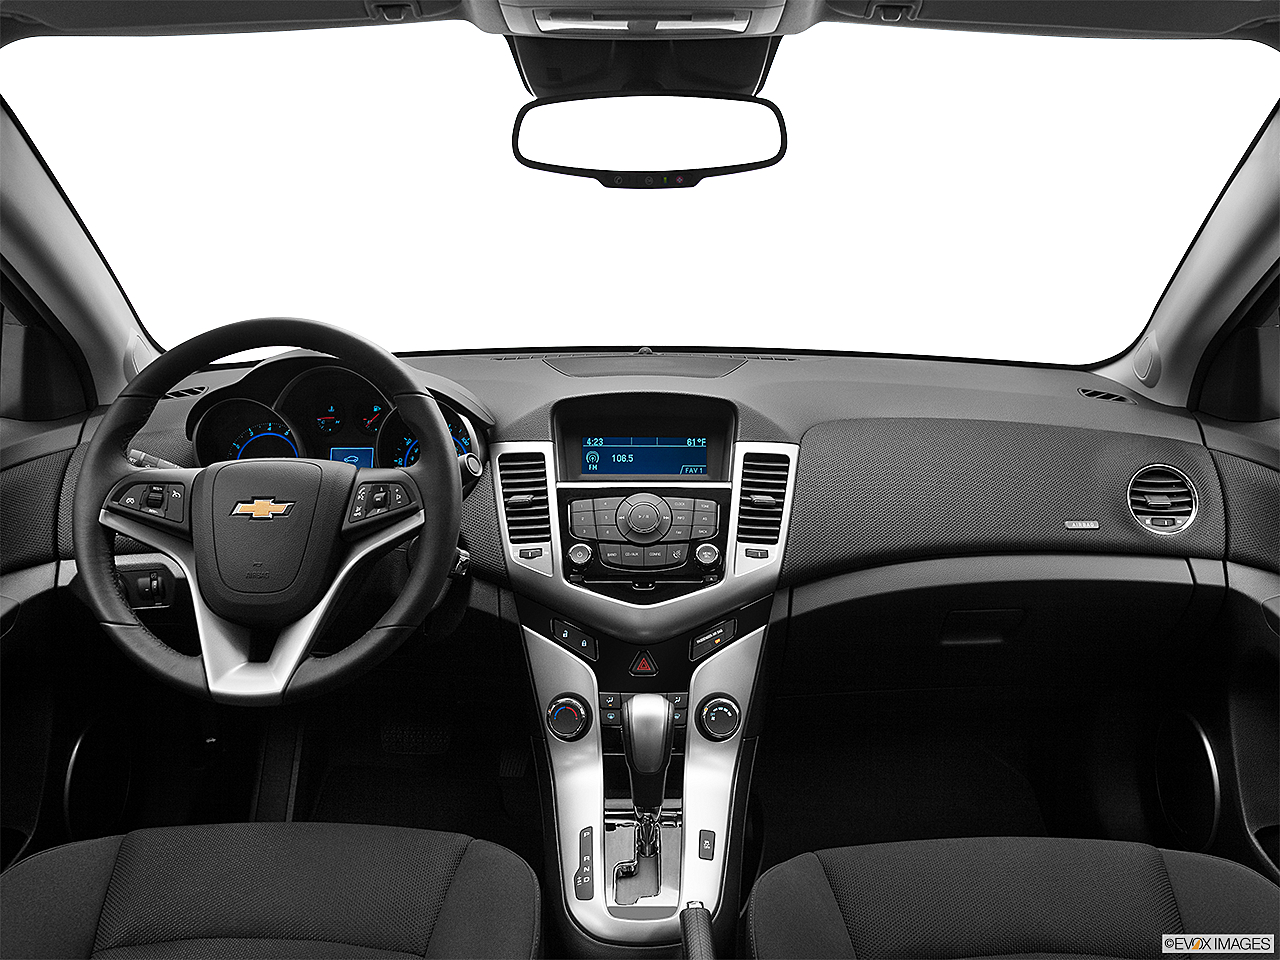 Chevrolet Sonic Owners Manual: FabricCarpetSuede